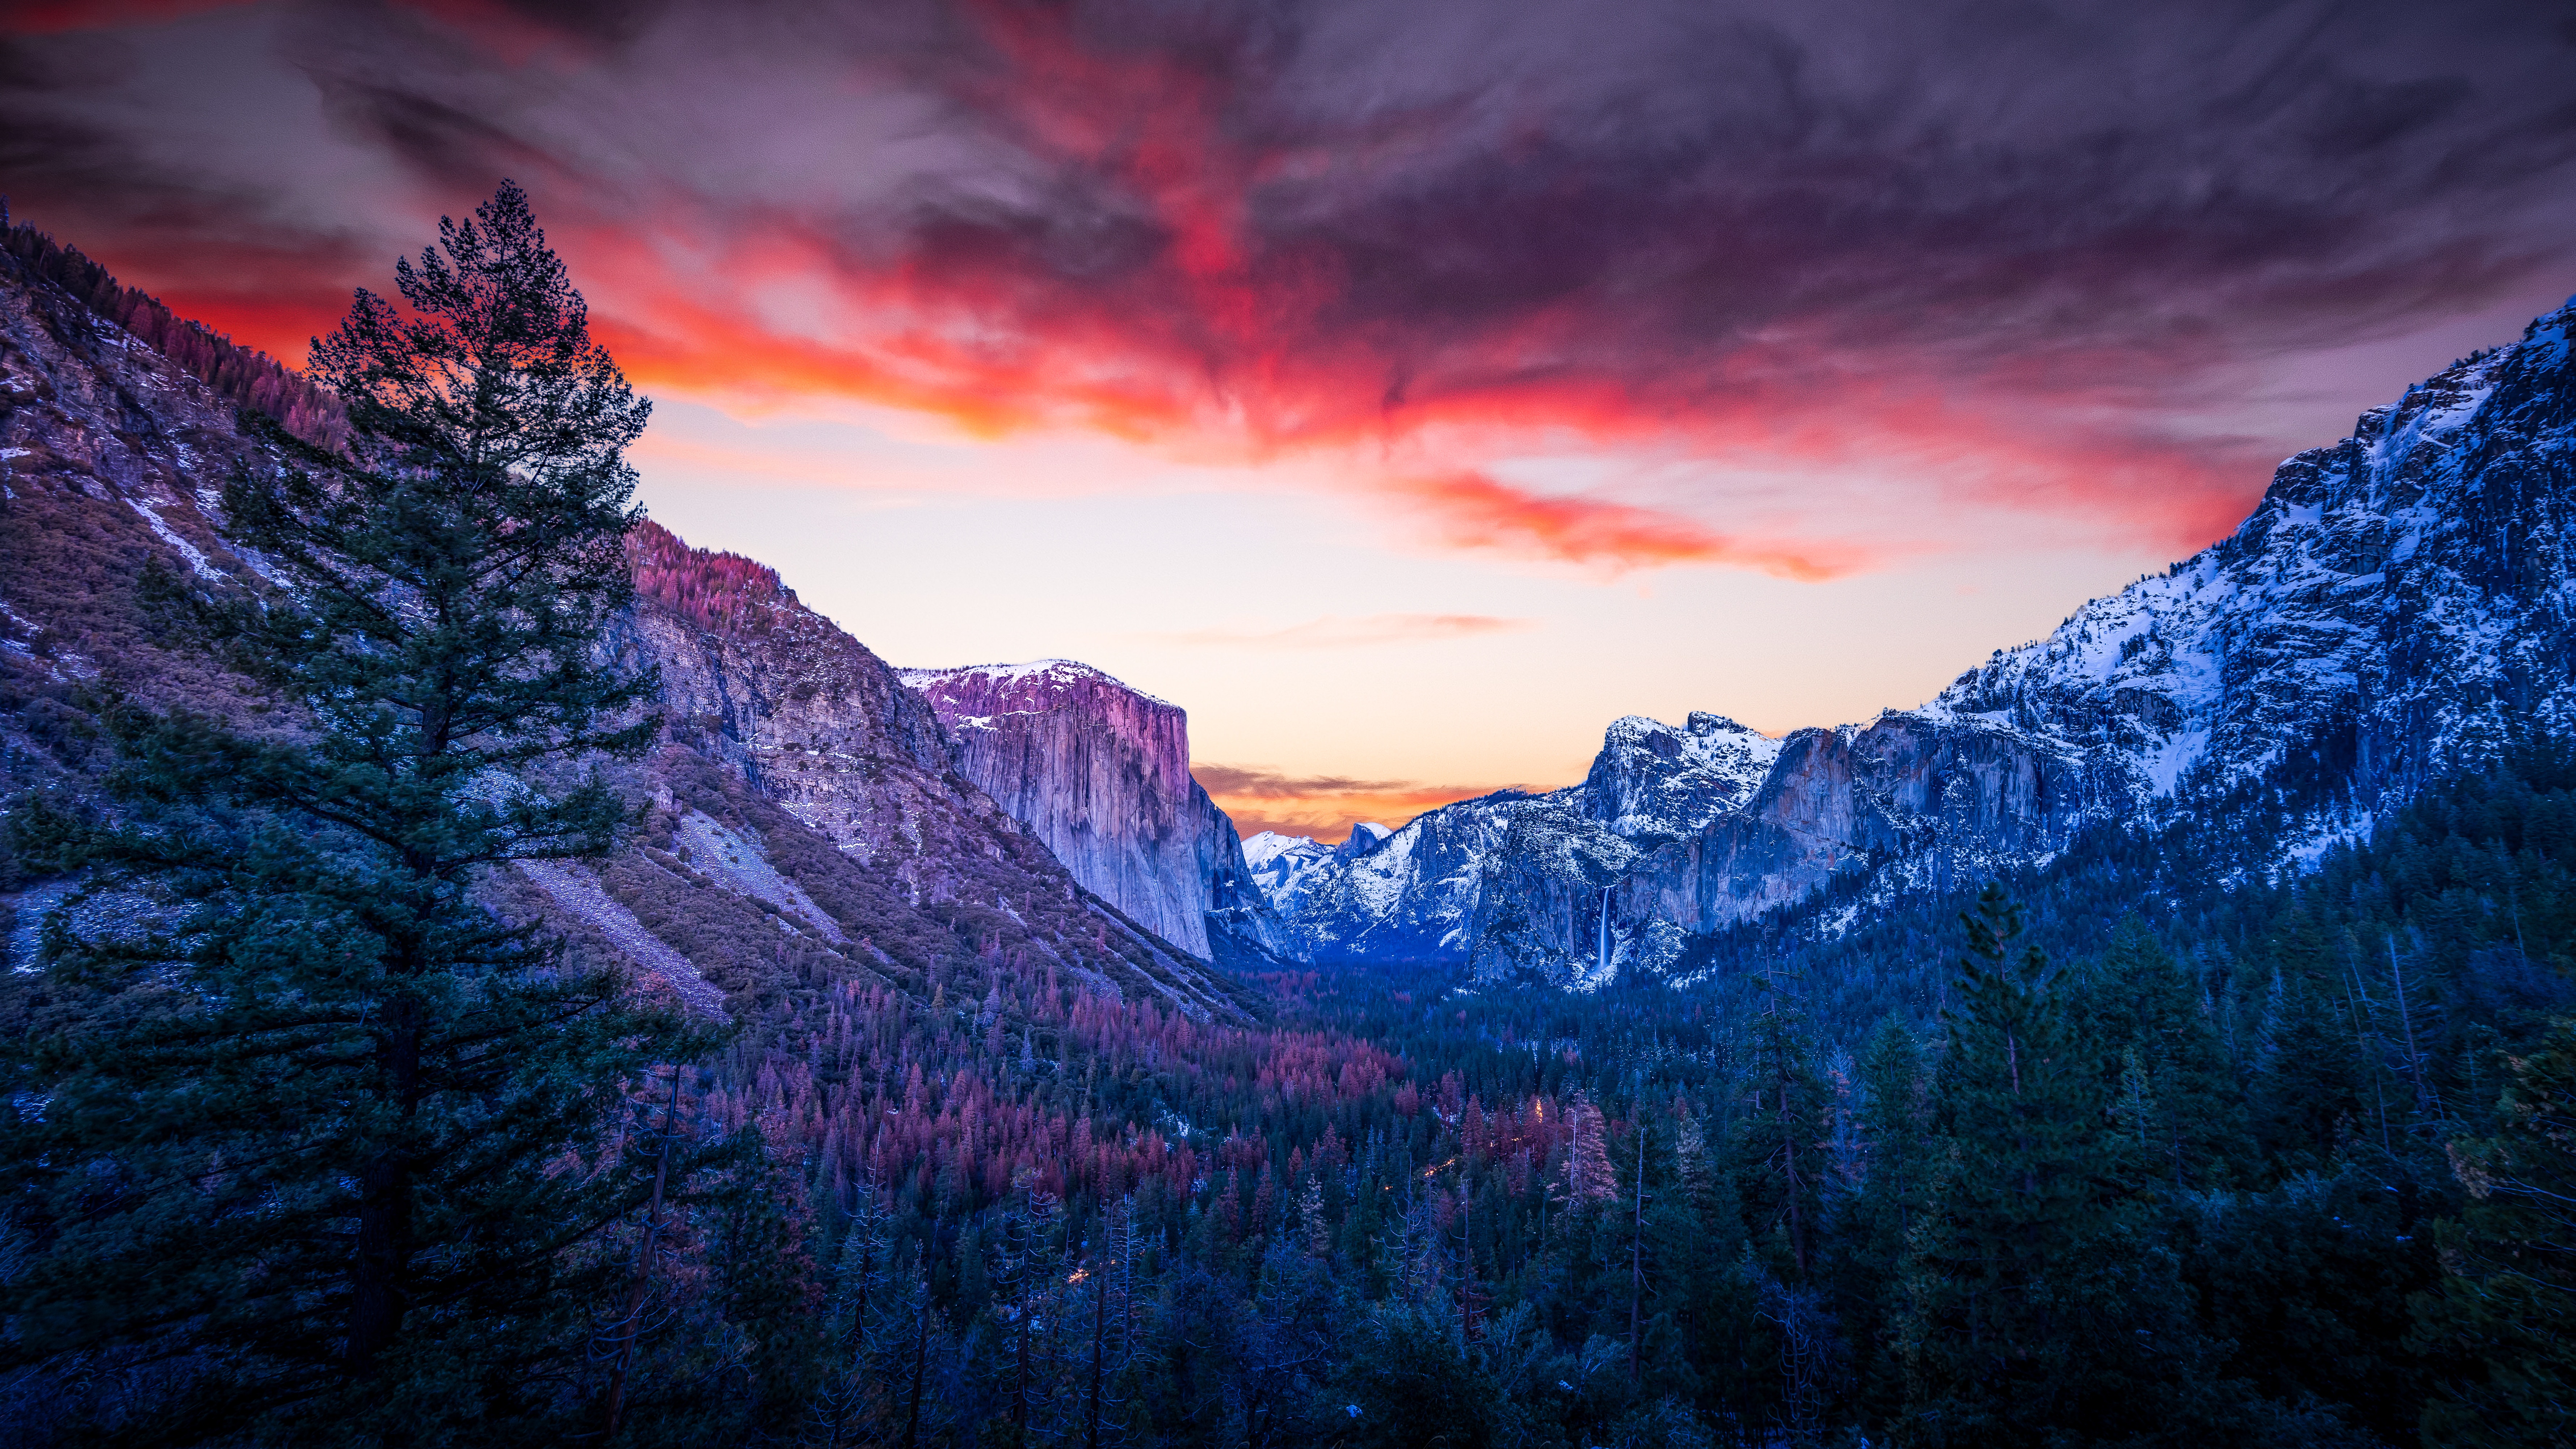 112700 download wallpaper Nature, Forest, Dusk, Twilight, Canyon, Clouds, Sunset, Mountains screensavers and pictures for free